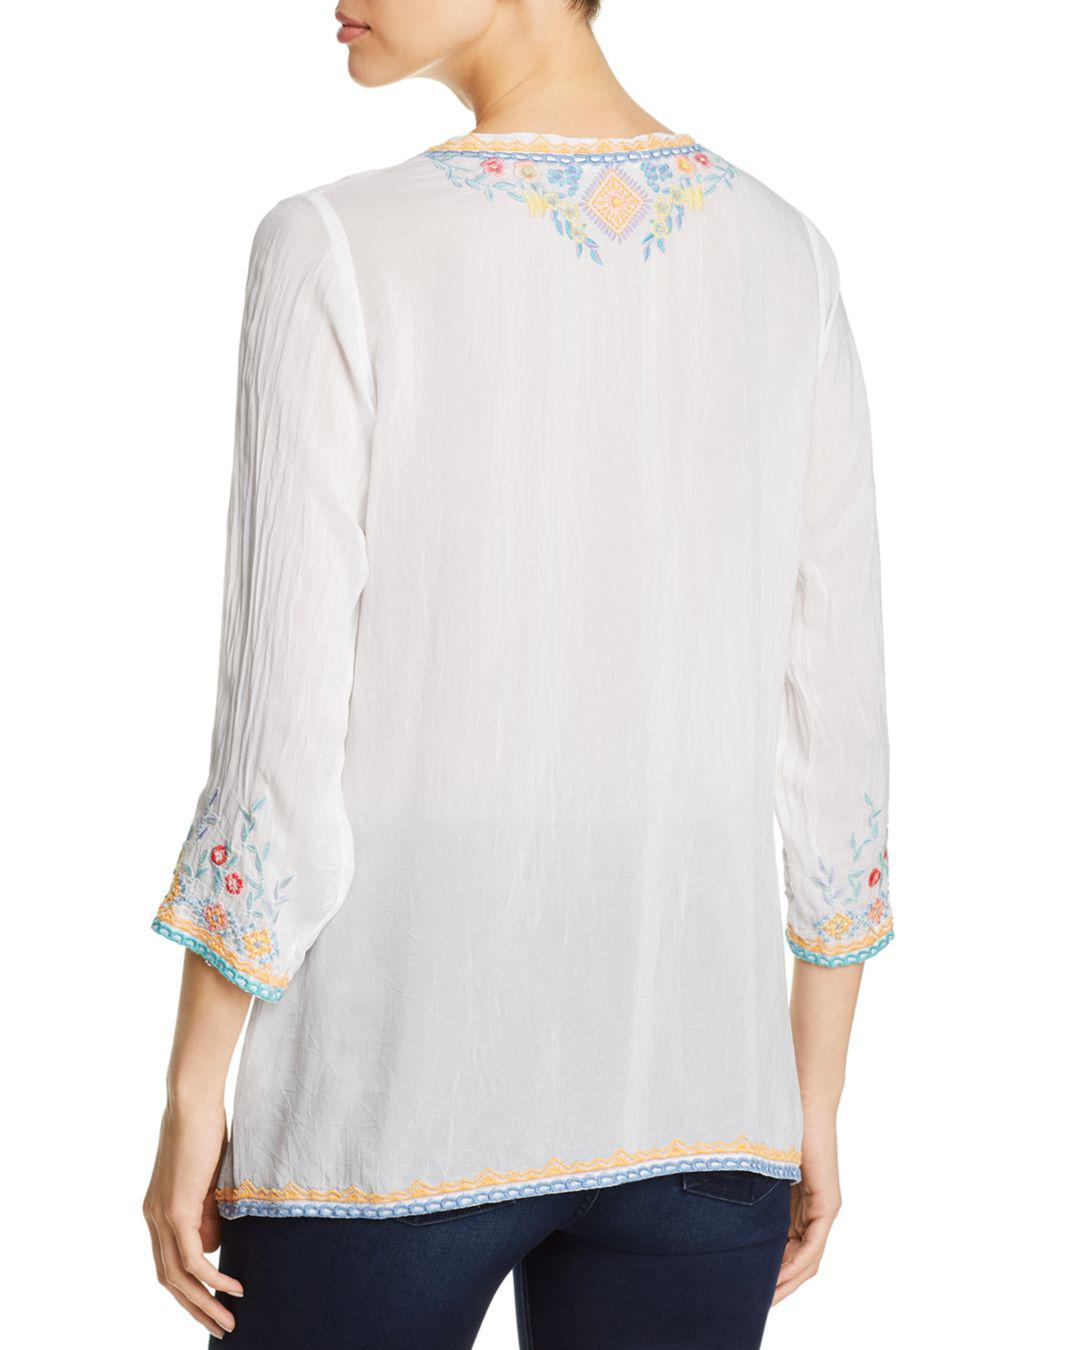 ad5c9bf265b8e6 Lyst - Johnny Was Ryleigh Embroidered Blouse in White